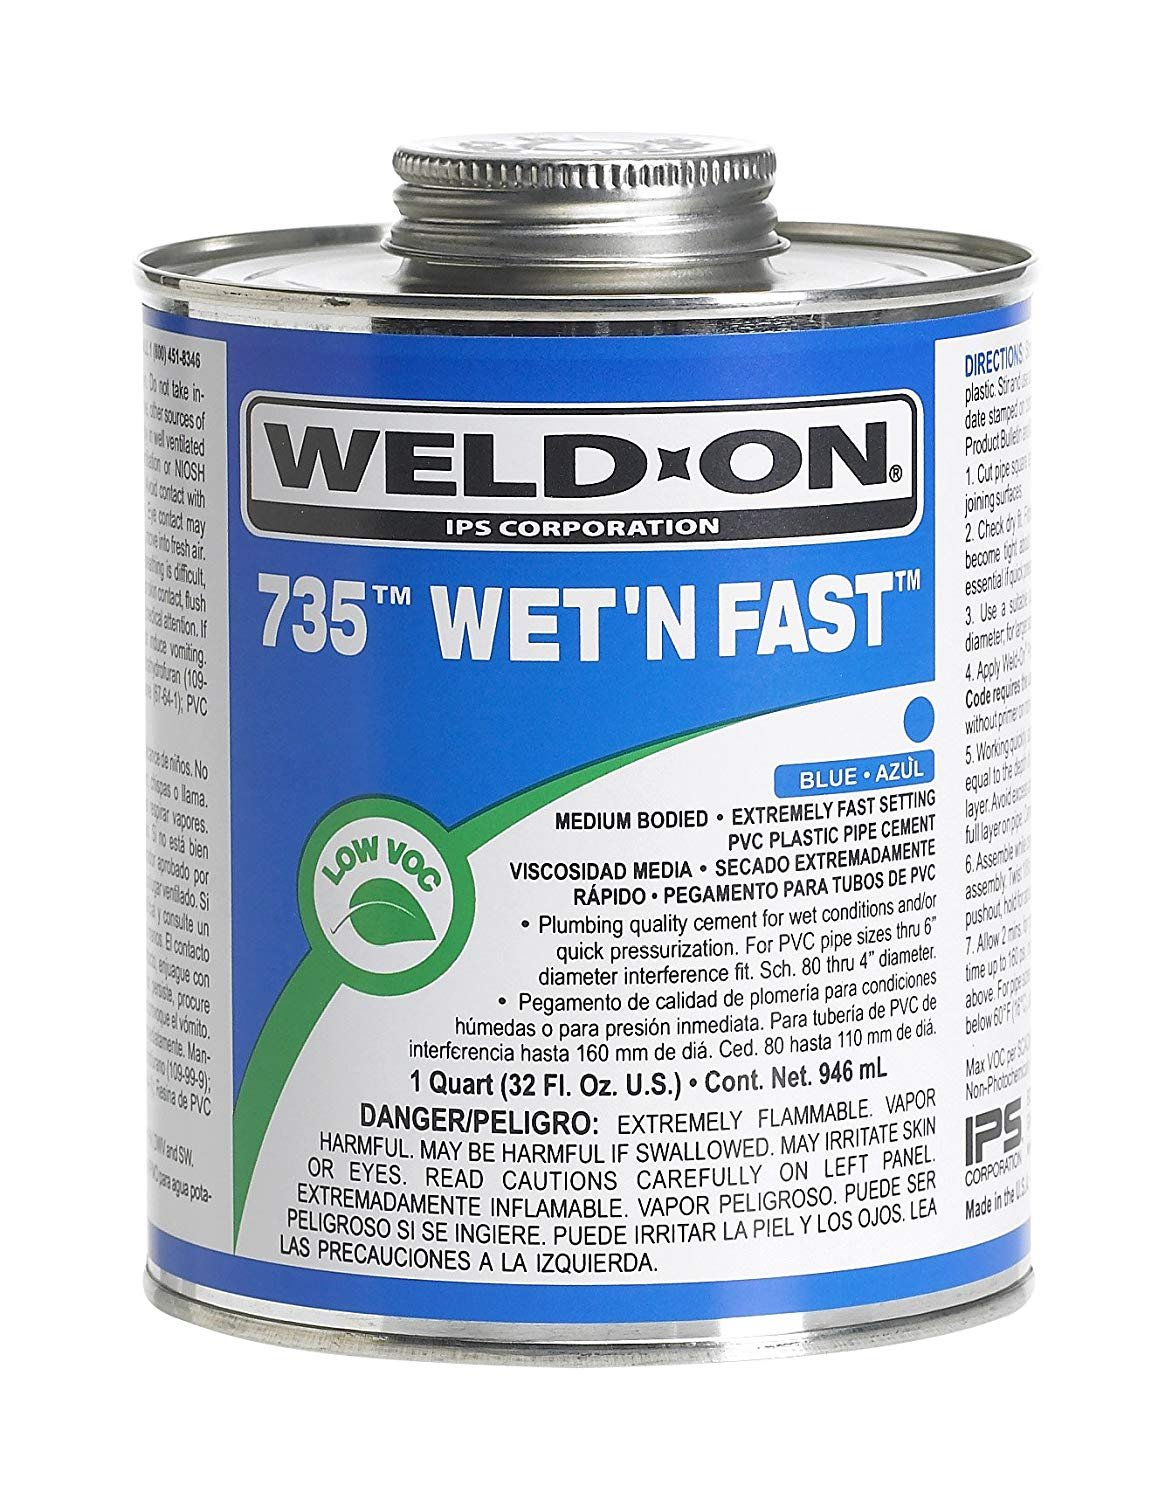 IPS CORPORATION GIDDS-451200 PVC Weld On Cement Wet N Fast Blue 1/4 Pint